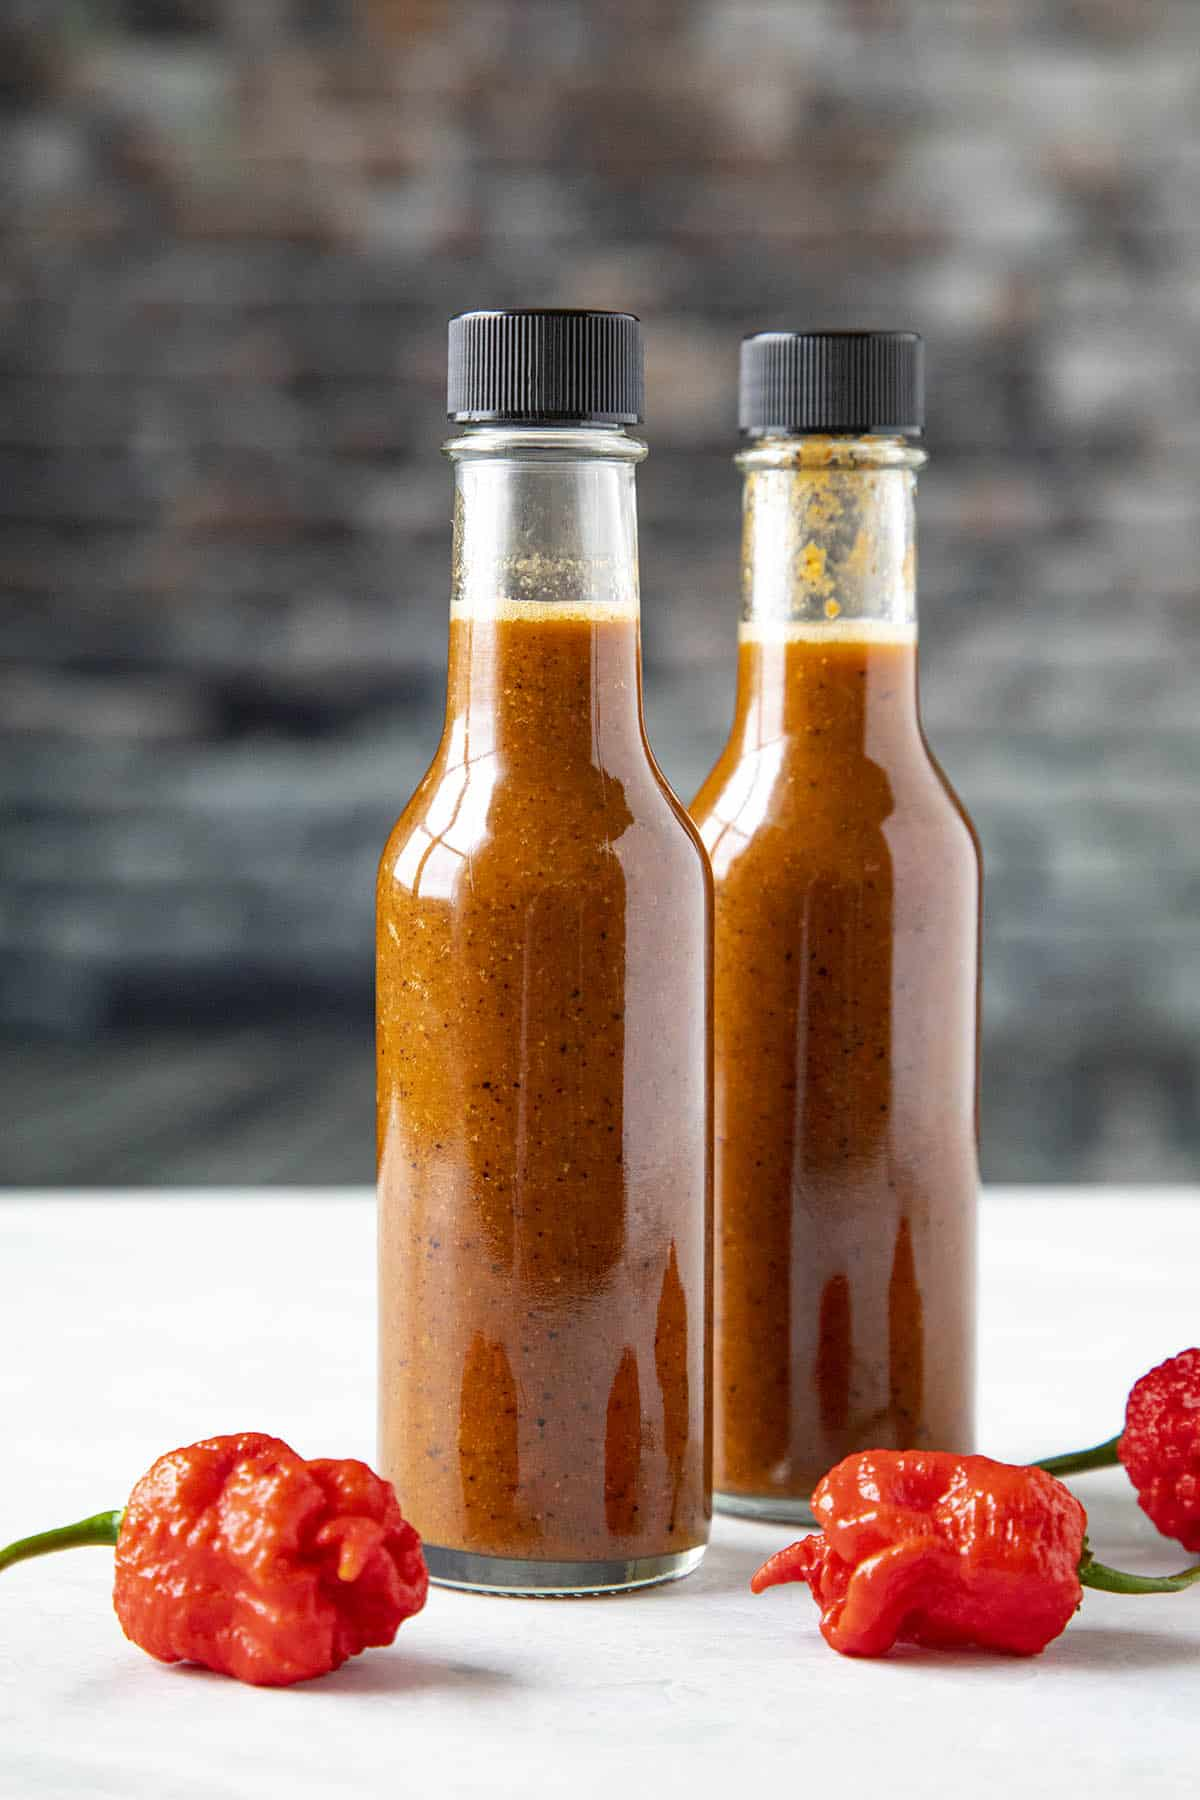 Carolina Reaper Hot Sauce Recipe